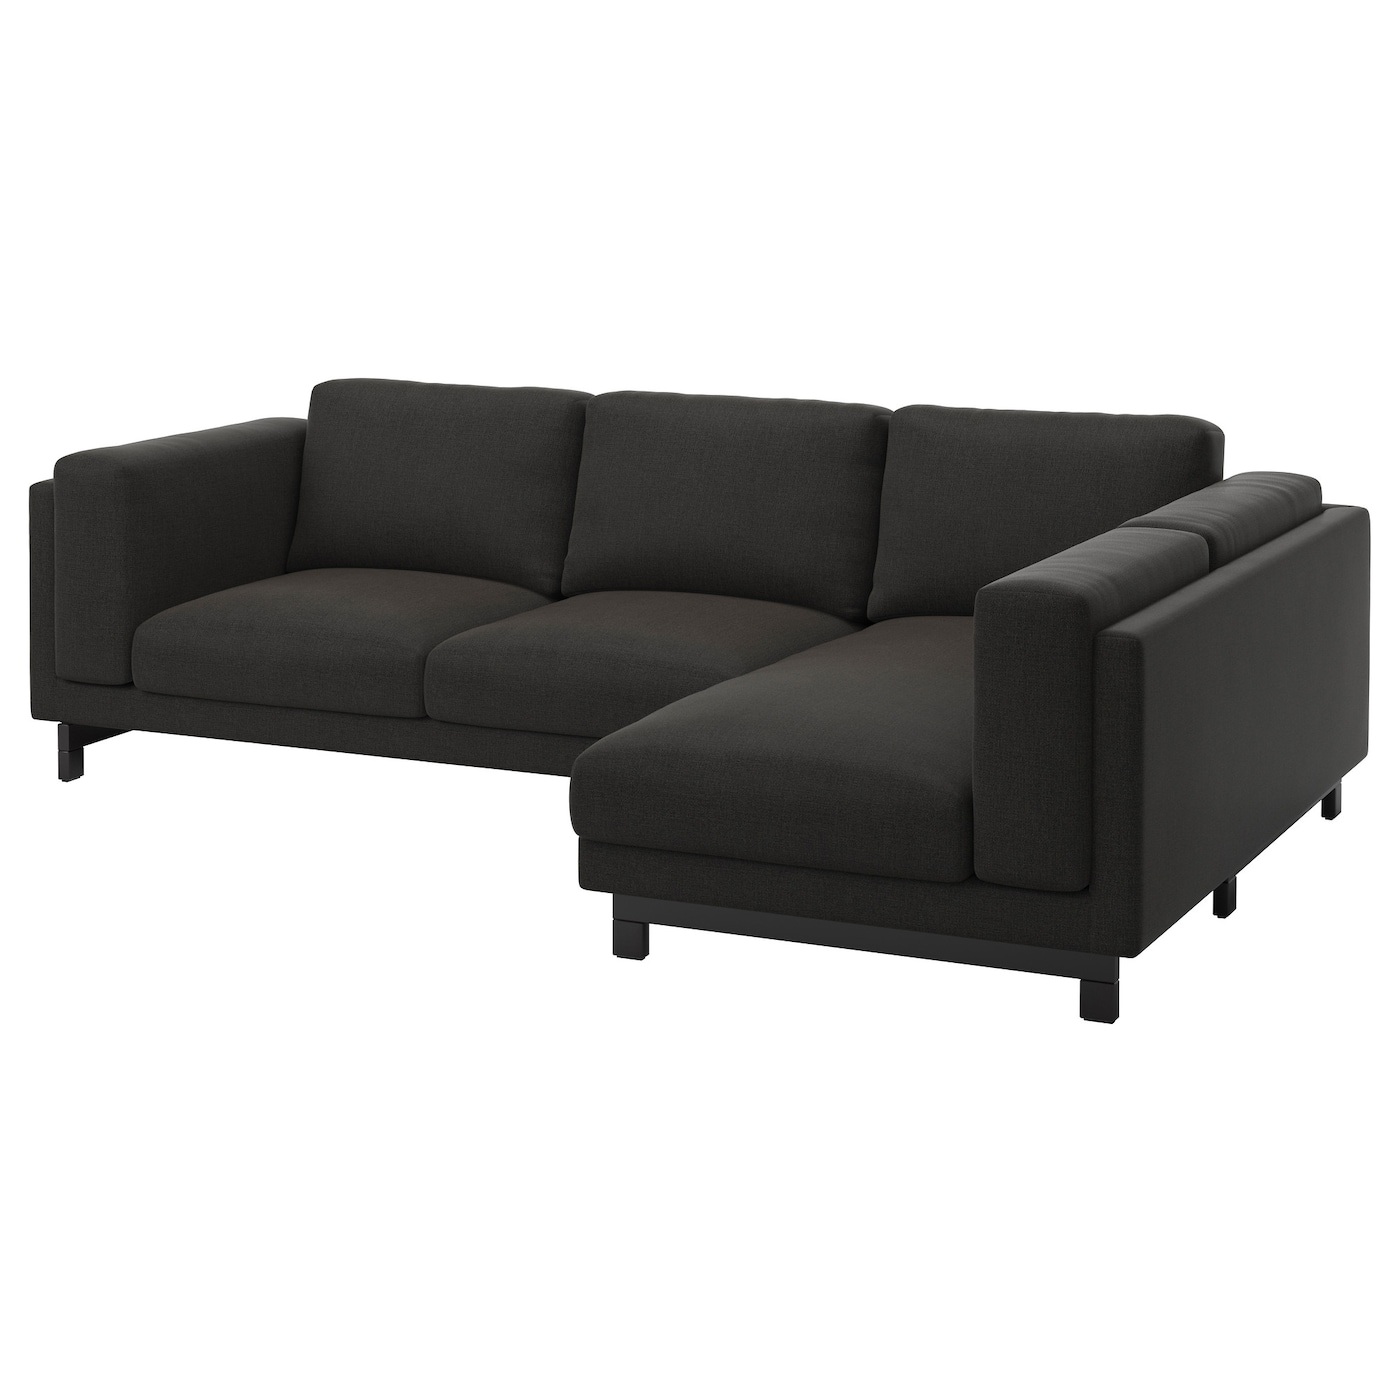 3 seater sofa ikea for 3 seat sofa with chaise